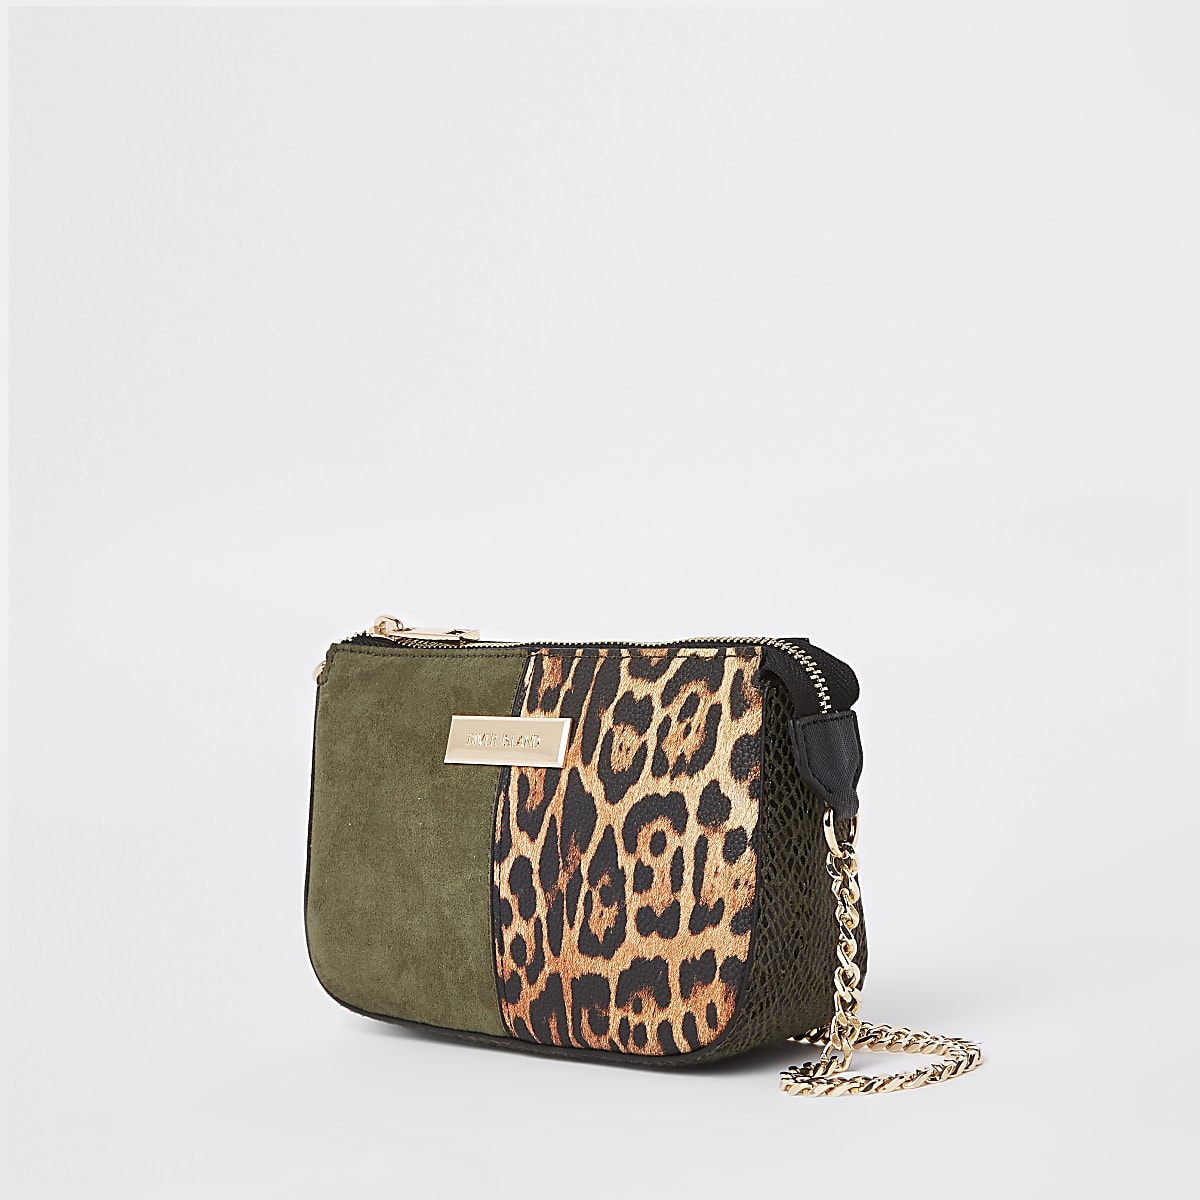 Khaki green underarm mini bag